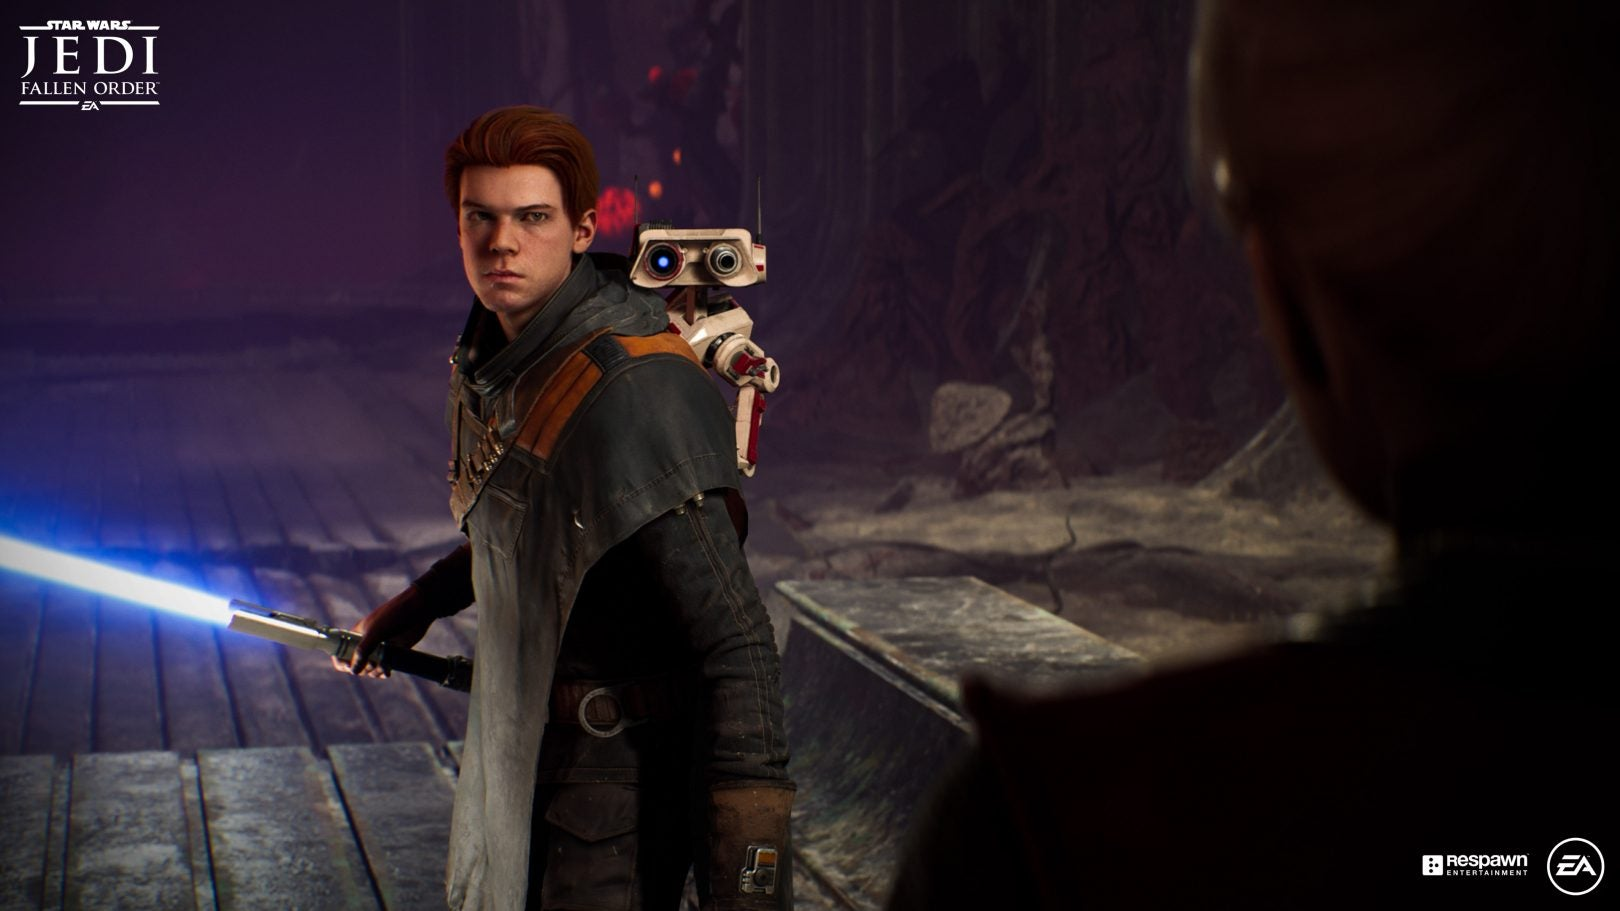 Star Wars Jedi: Fallen Order next-gen update coming soon